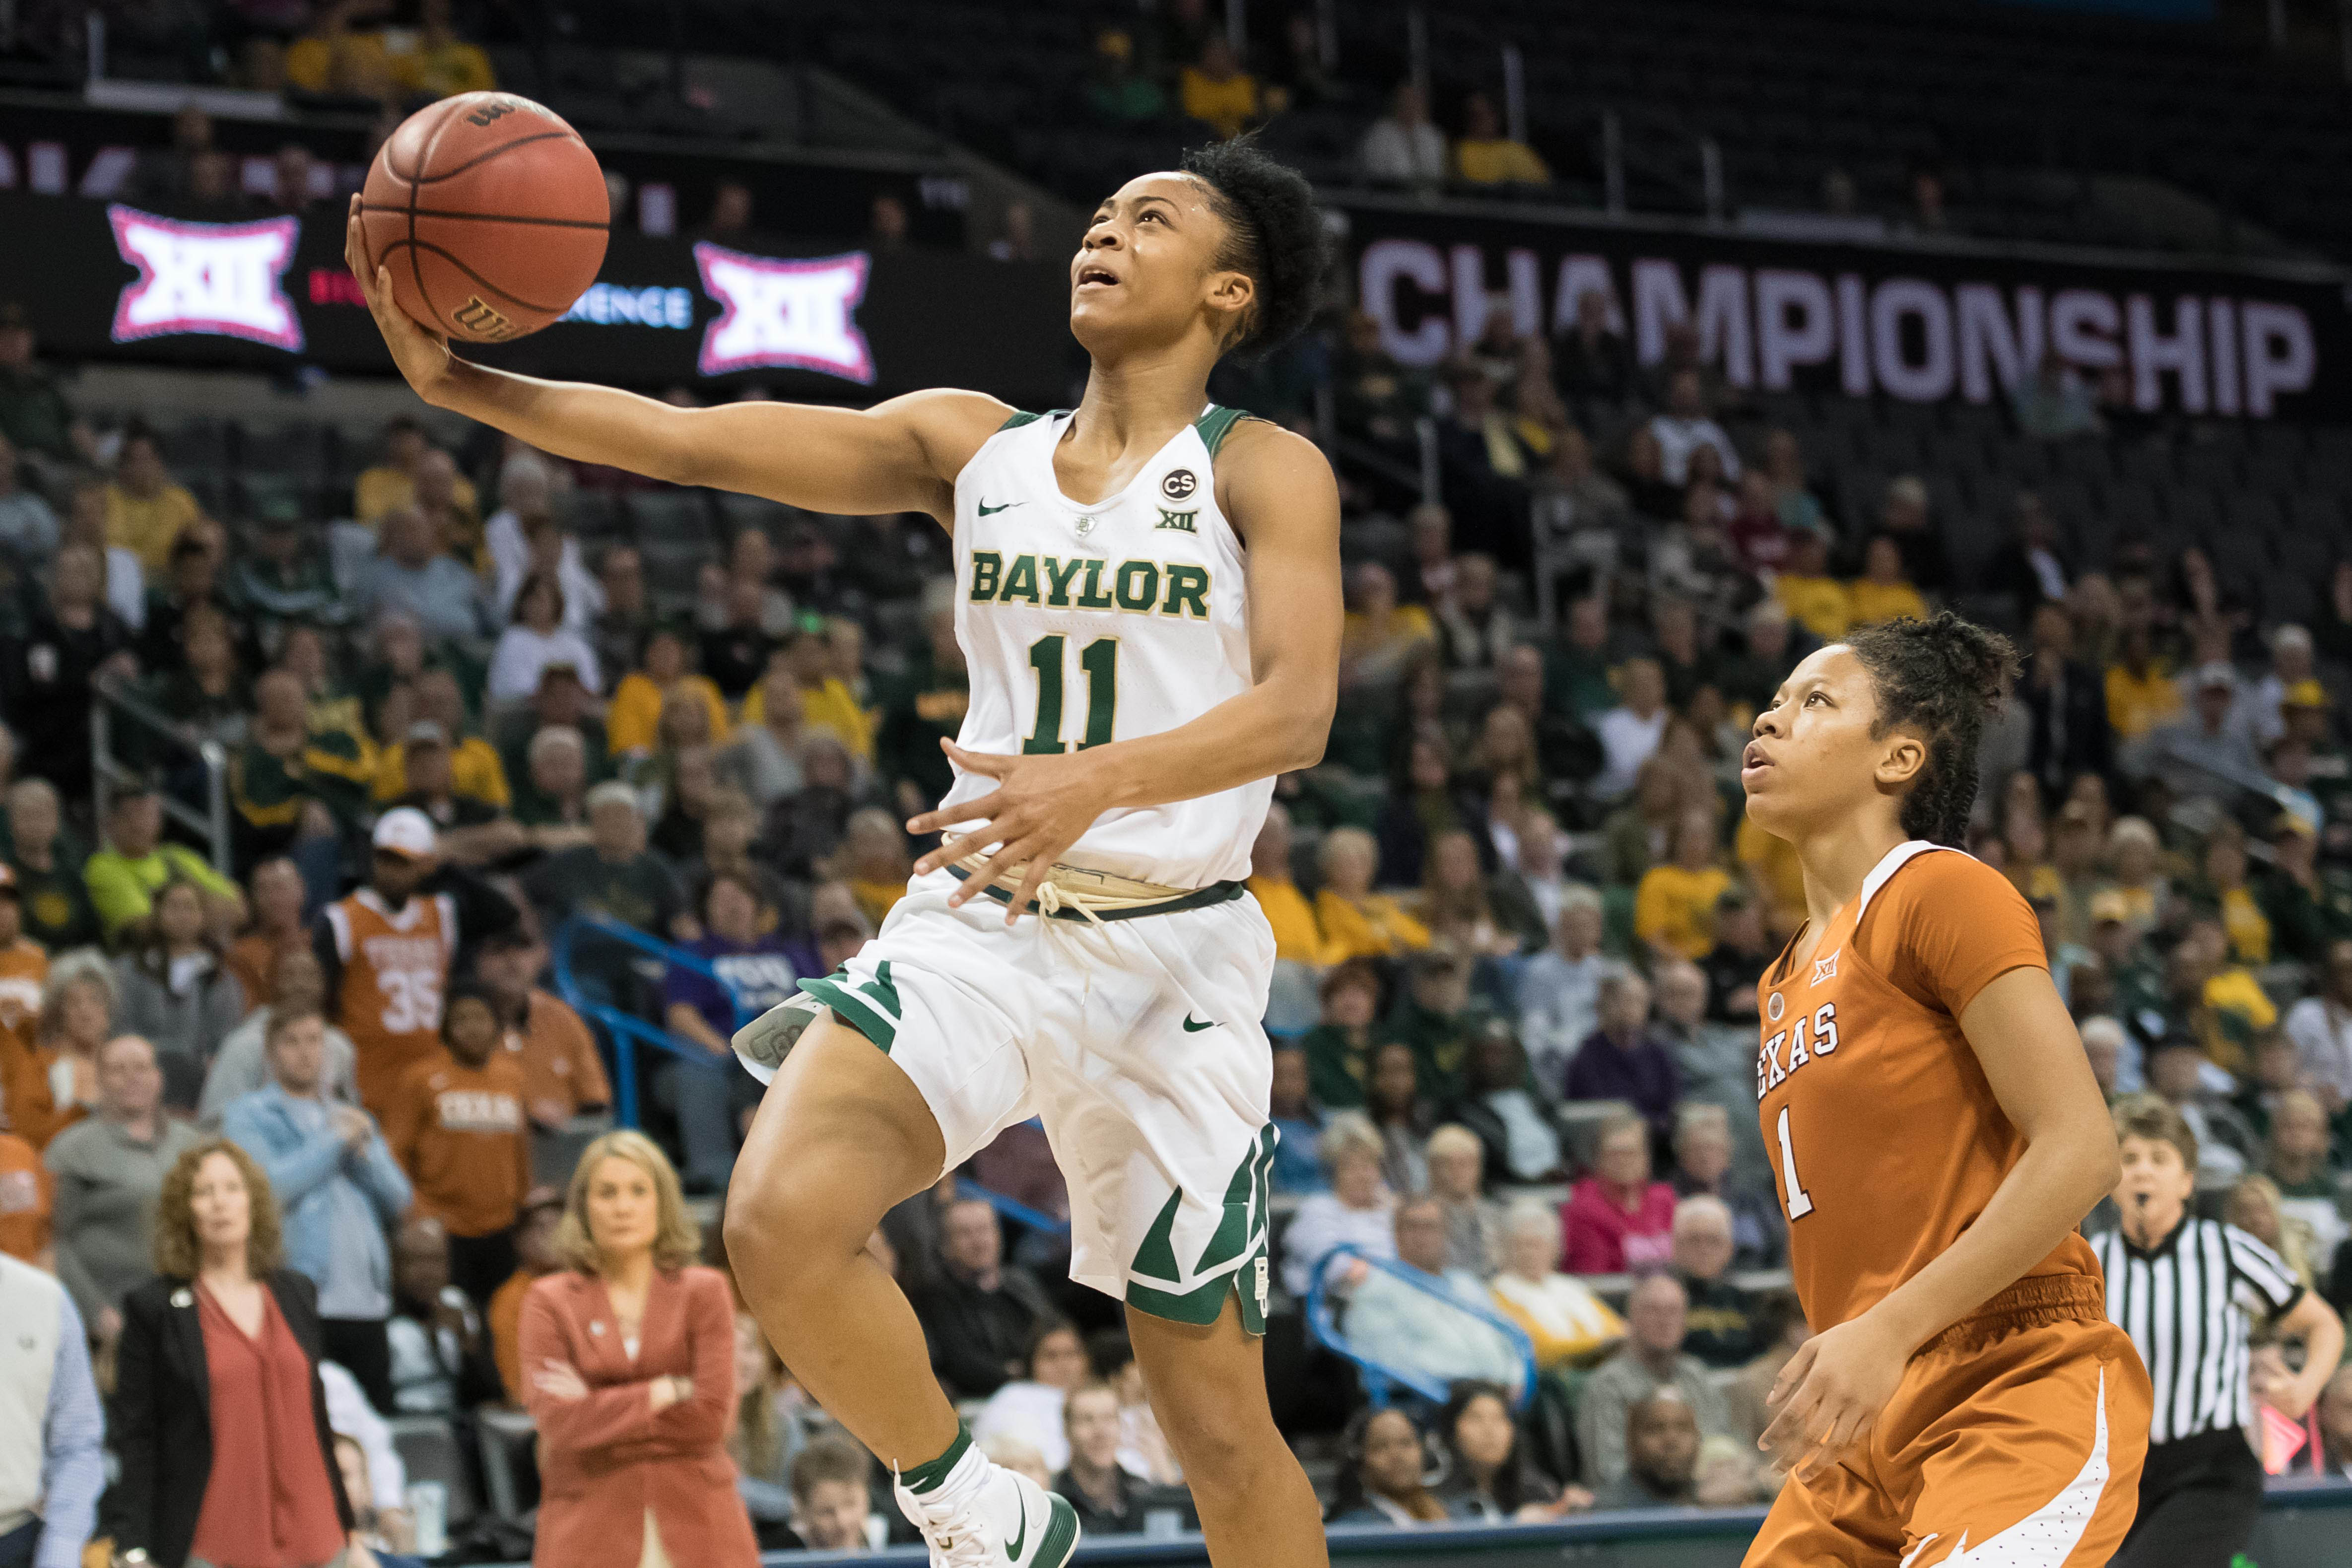 Oregon State Women's Basketball Draws #2 Seed Baylor In Sweet Sixteen